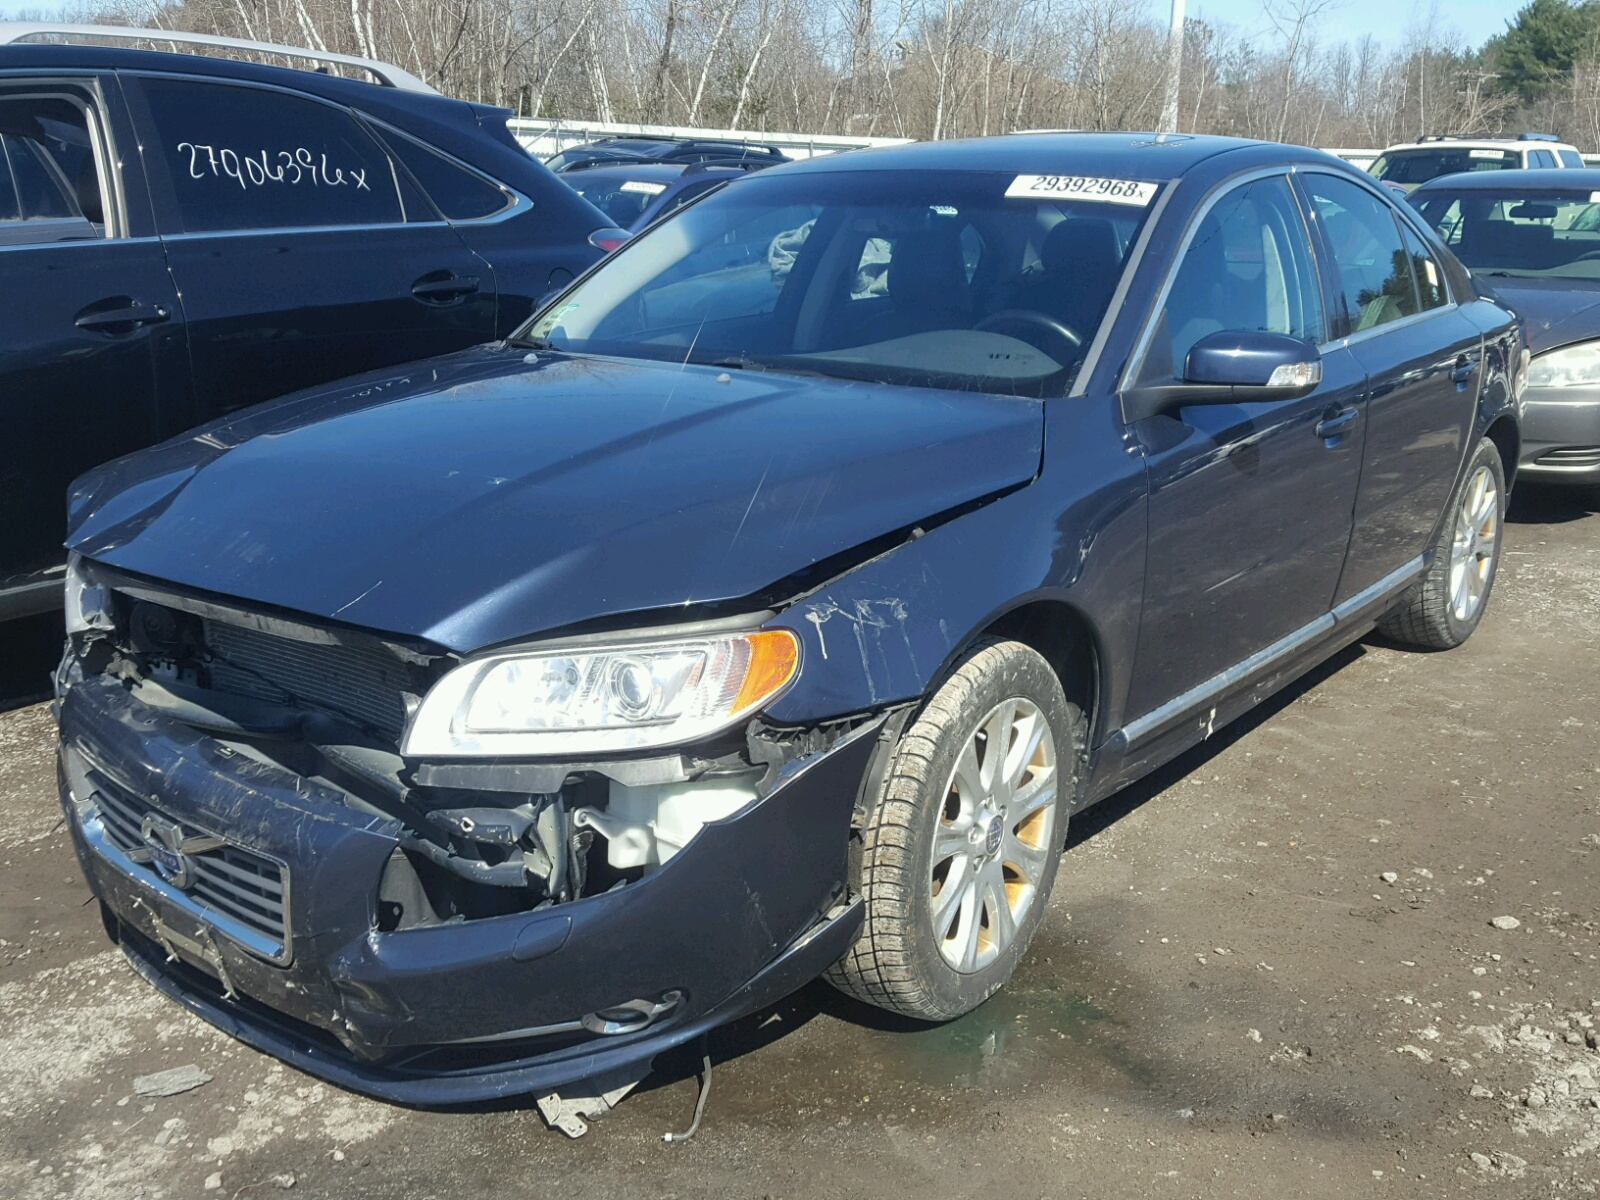 hight resolution of 2011 volvo s80 3 2 lot 29392968